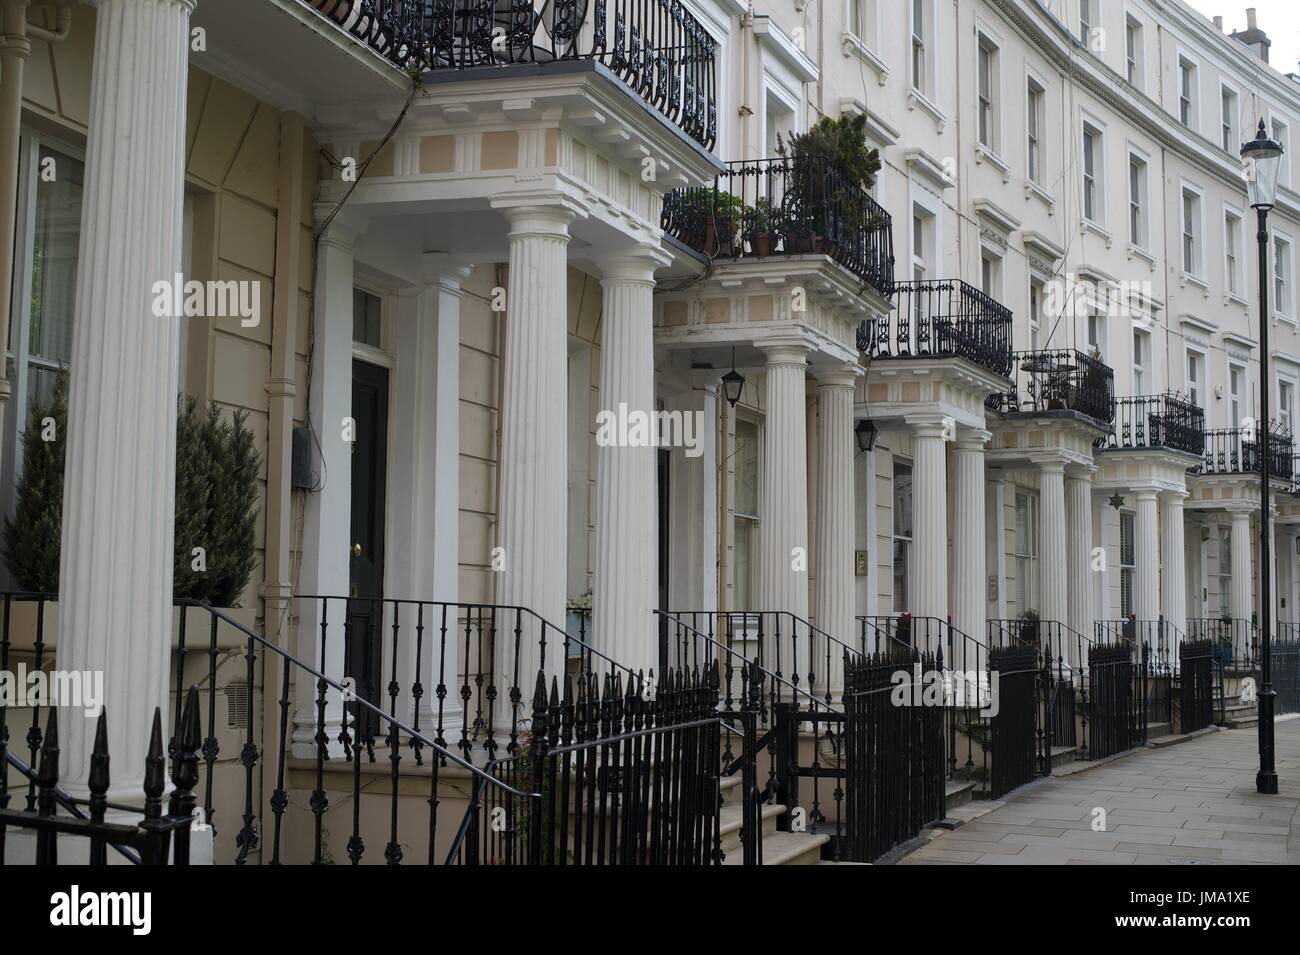 Terraced houses across the UK - Stock Image